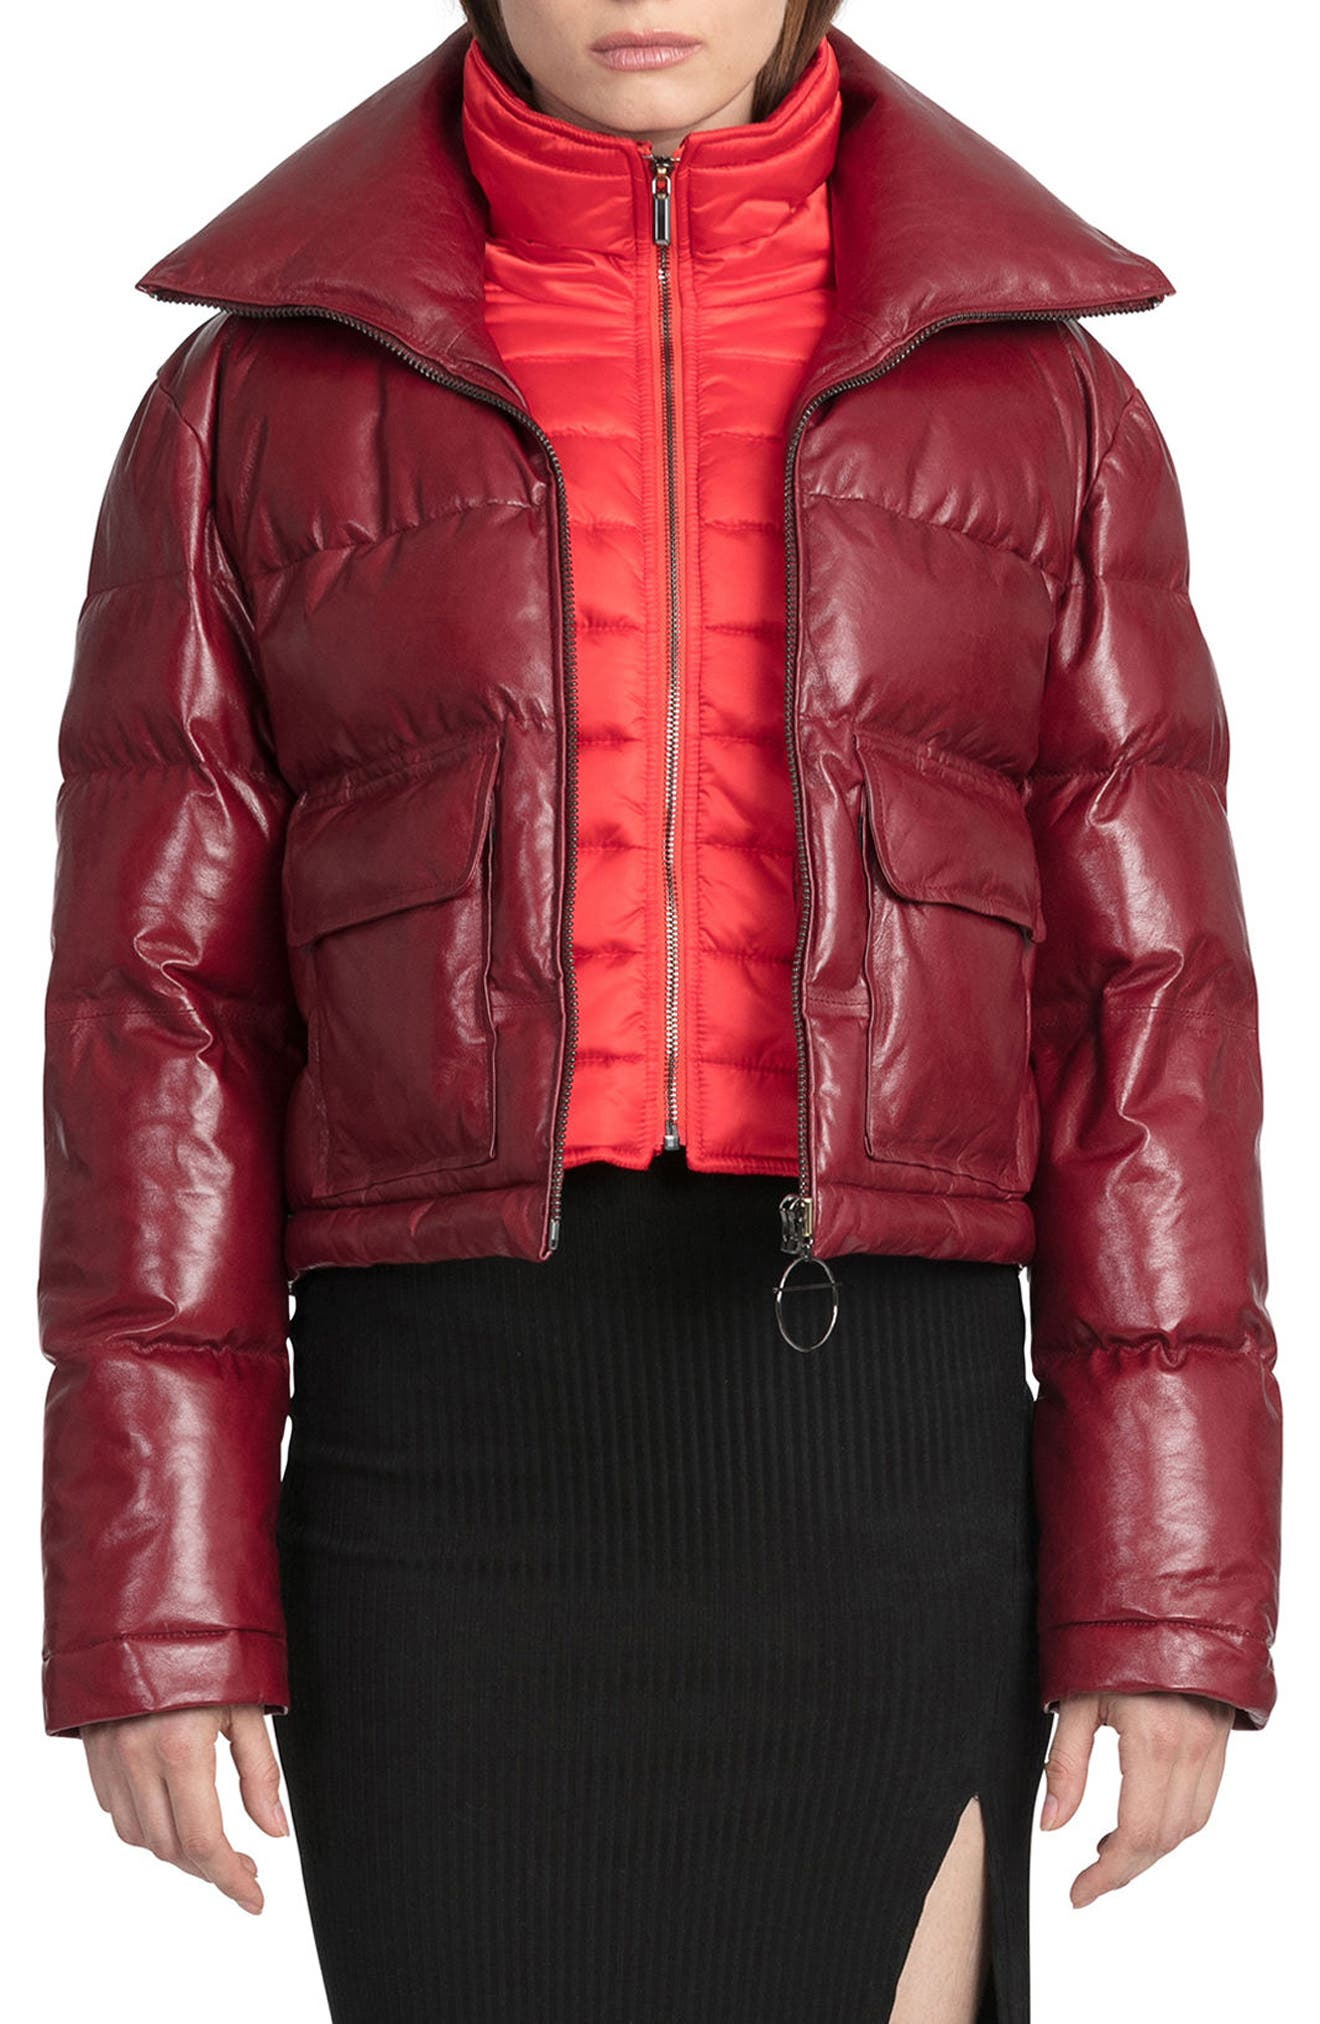 Alternate Image 1 Selected - BAGATELLE.CITY The Puffer Leather Jacket with Removable Bib Lining